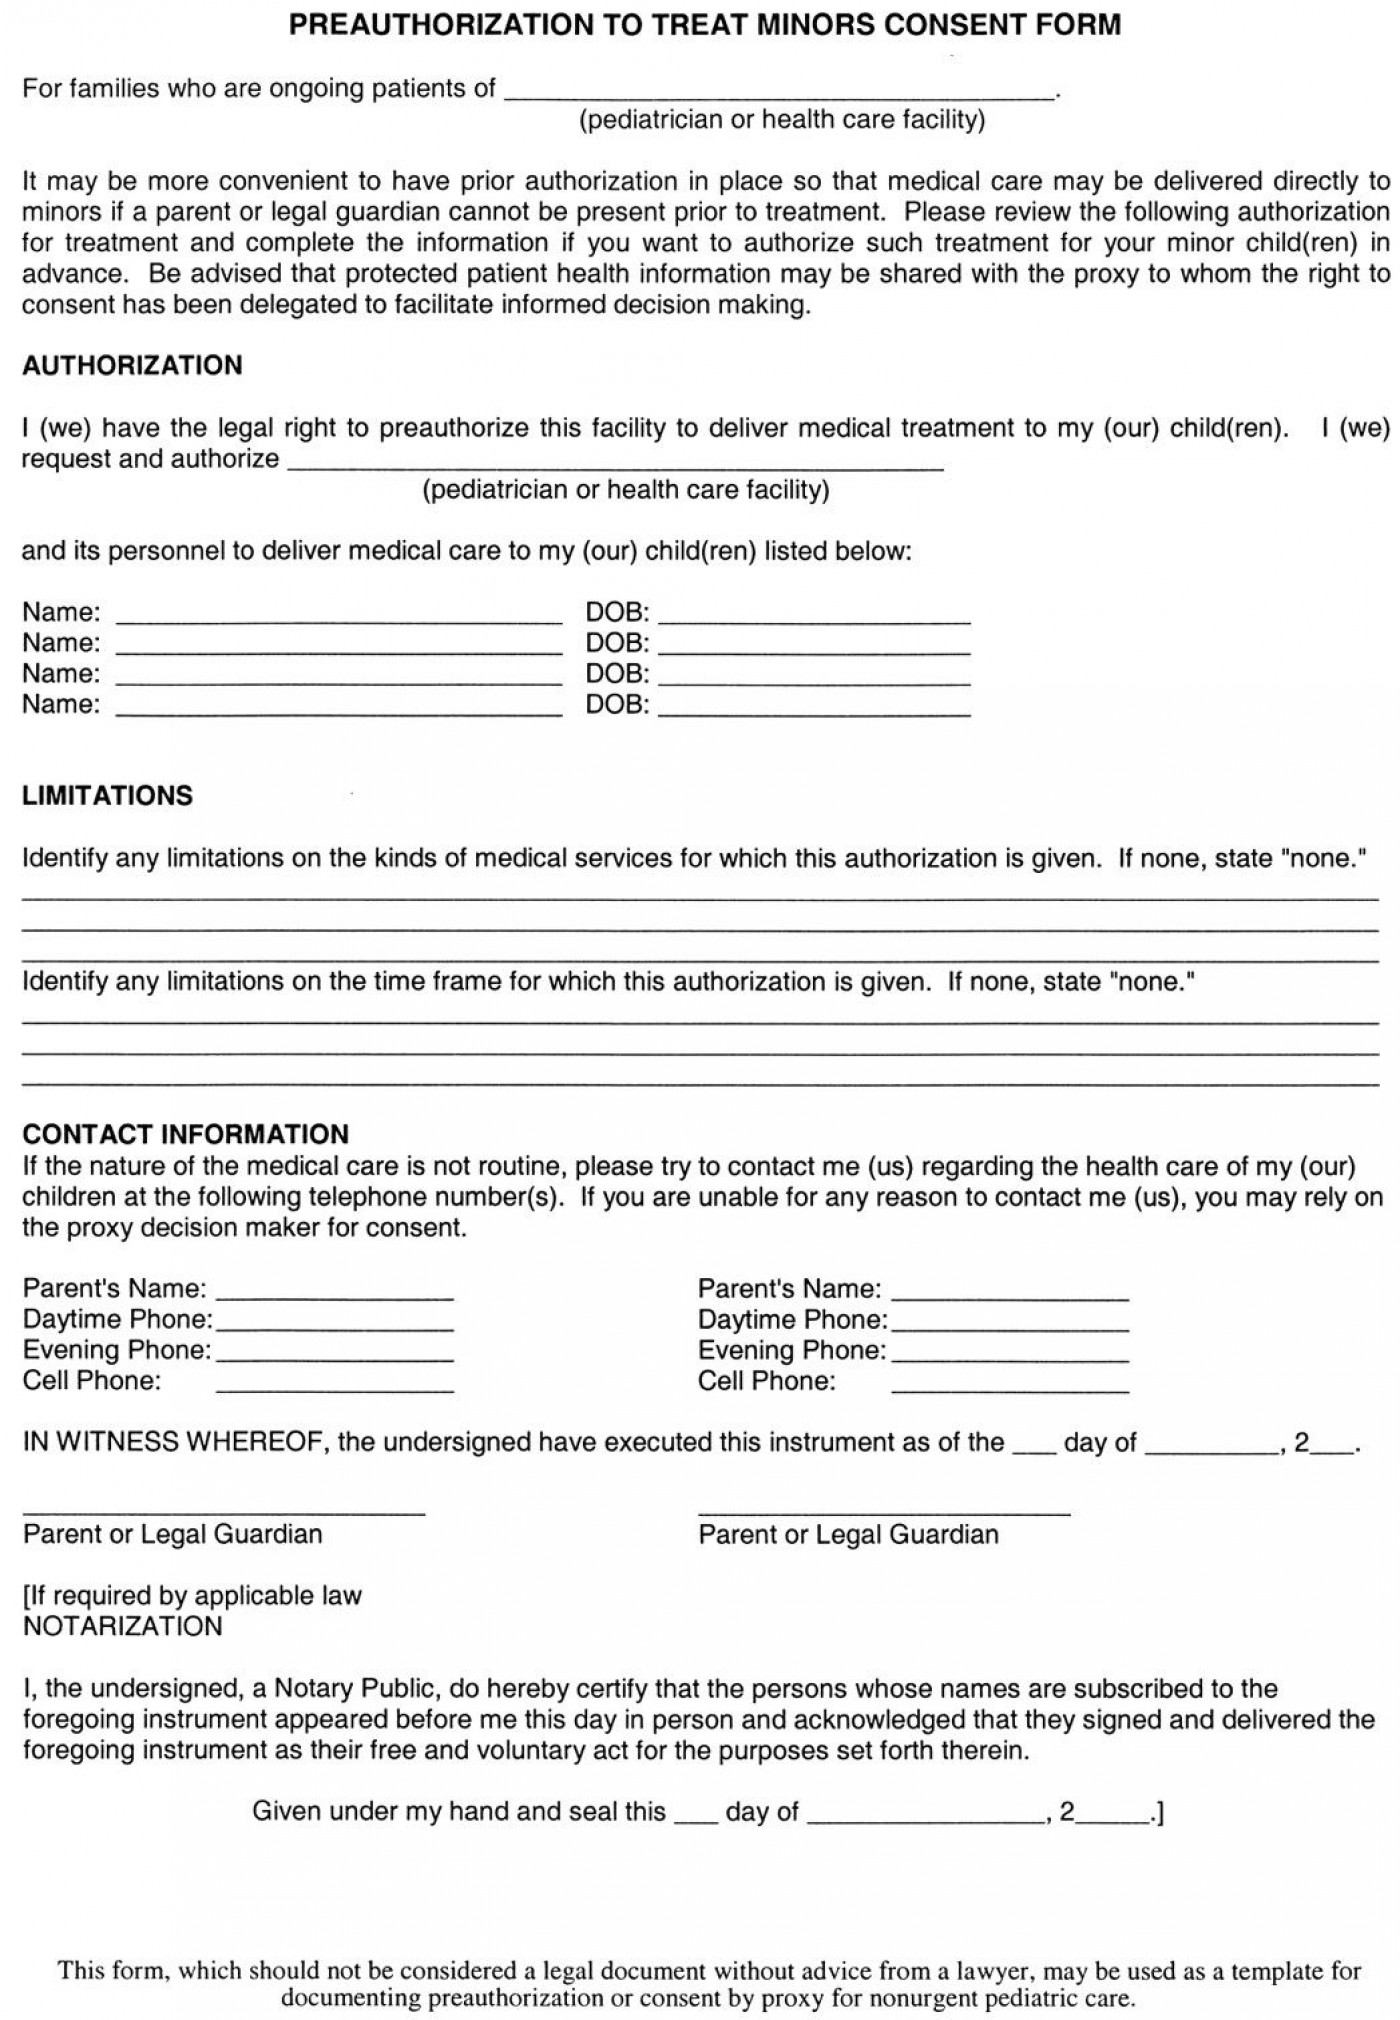 005 Stupendou Medical Treatment Authorization And Consent Form Template High Def 1400